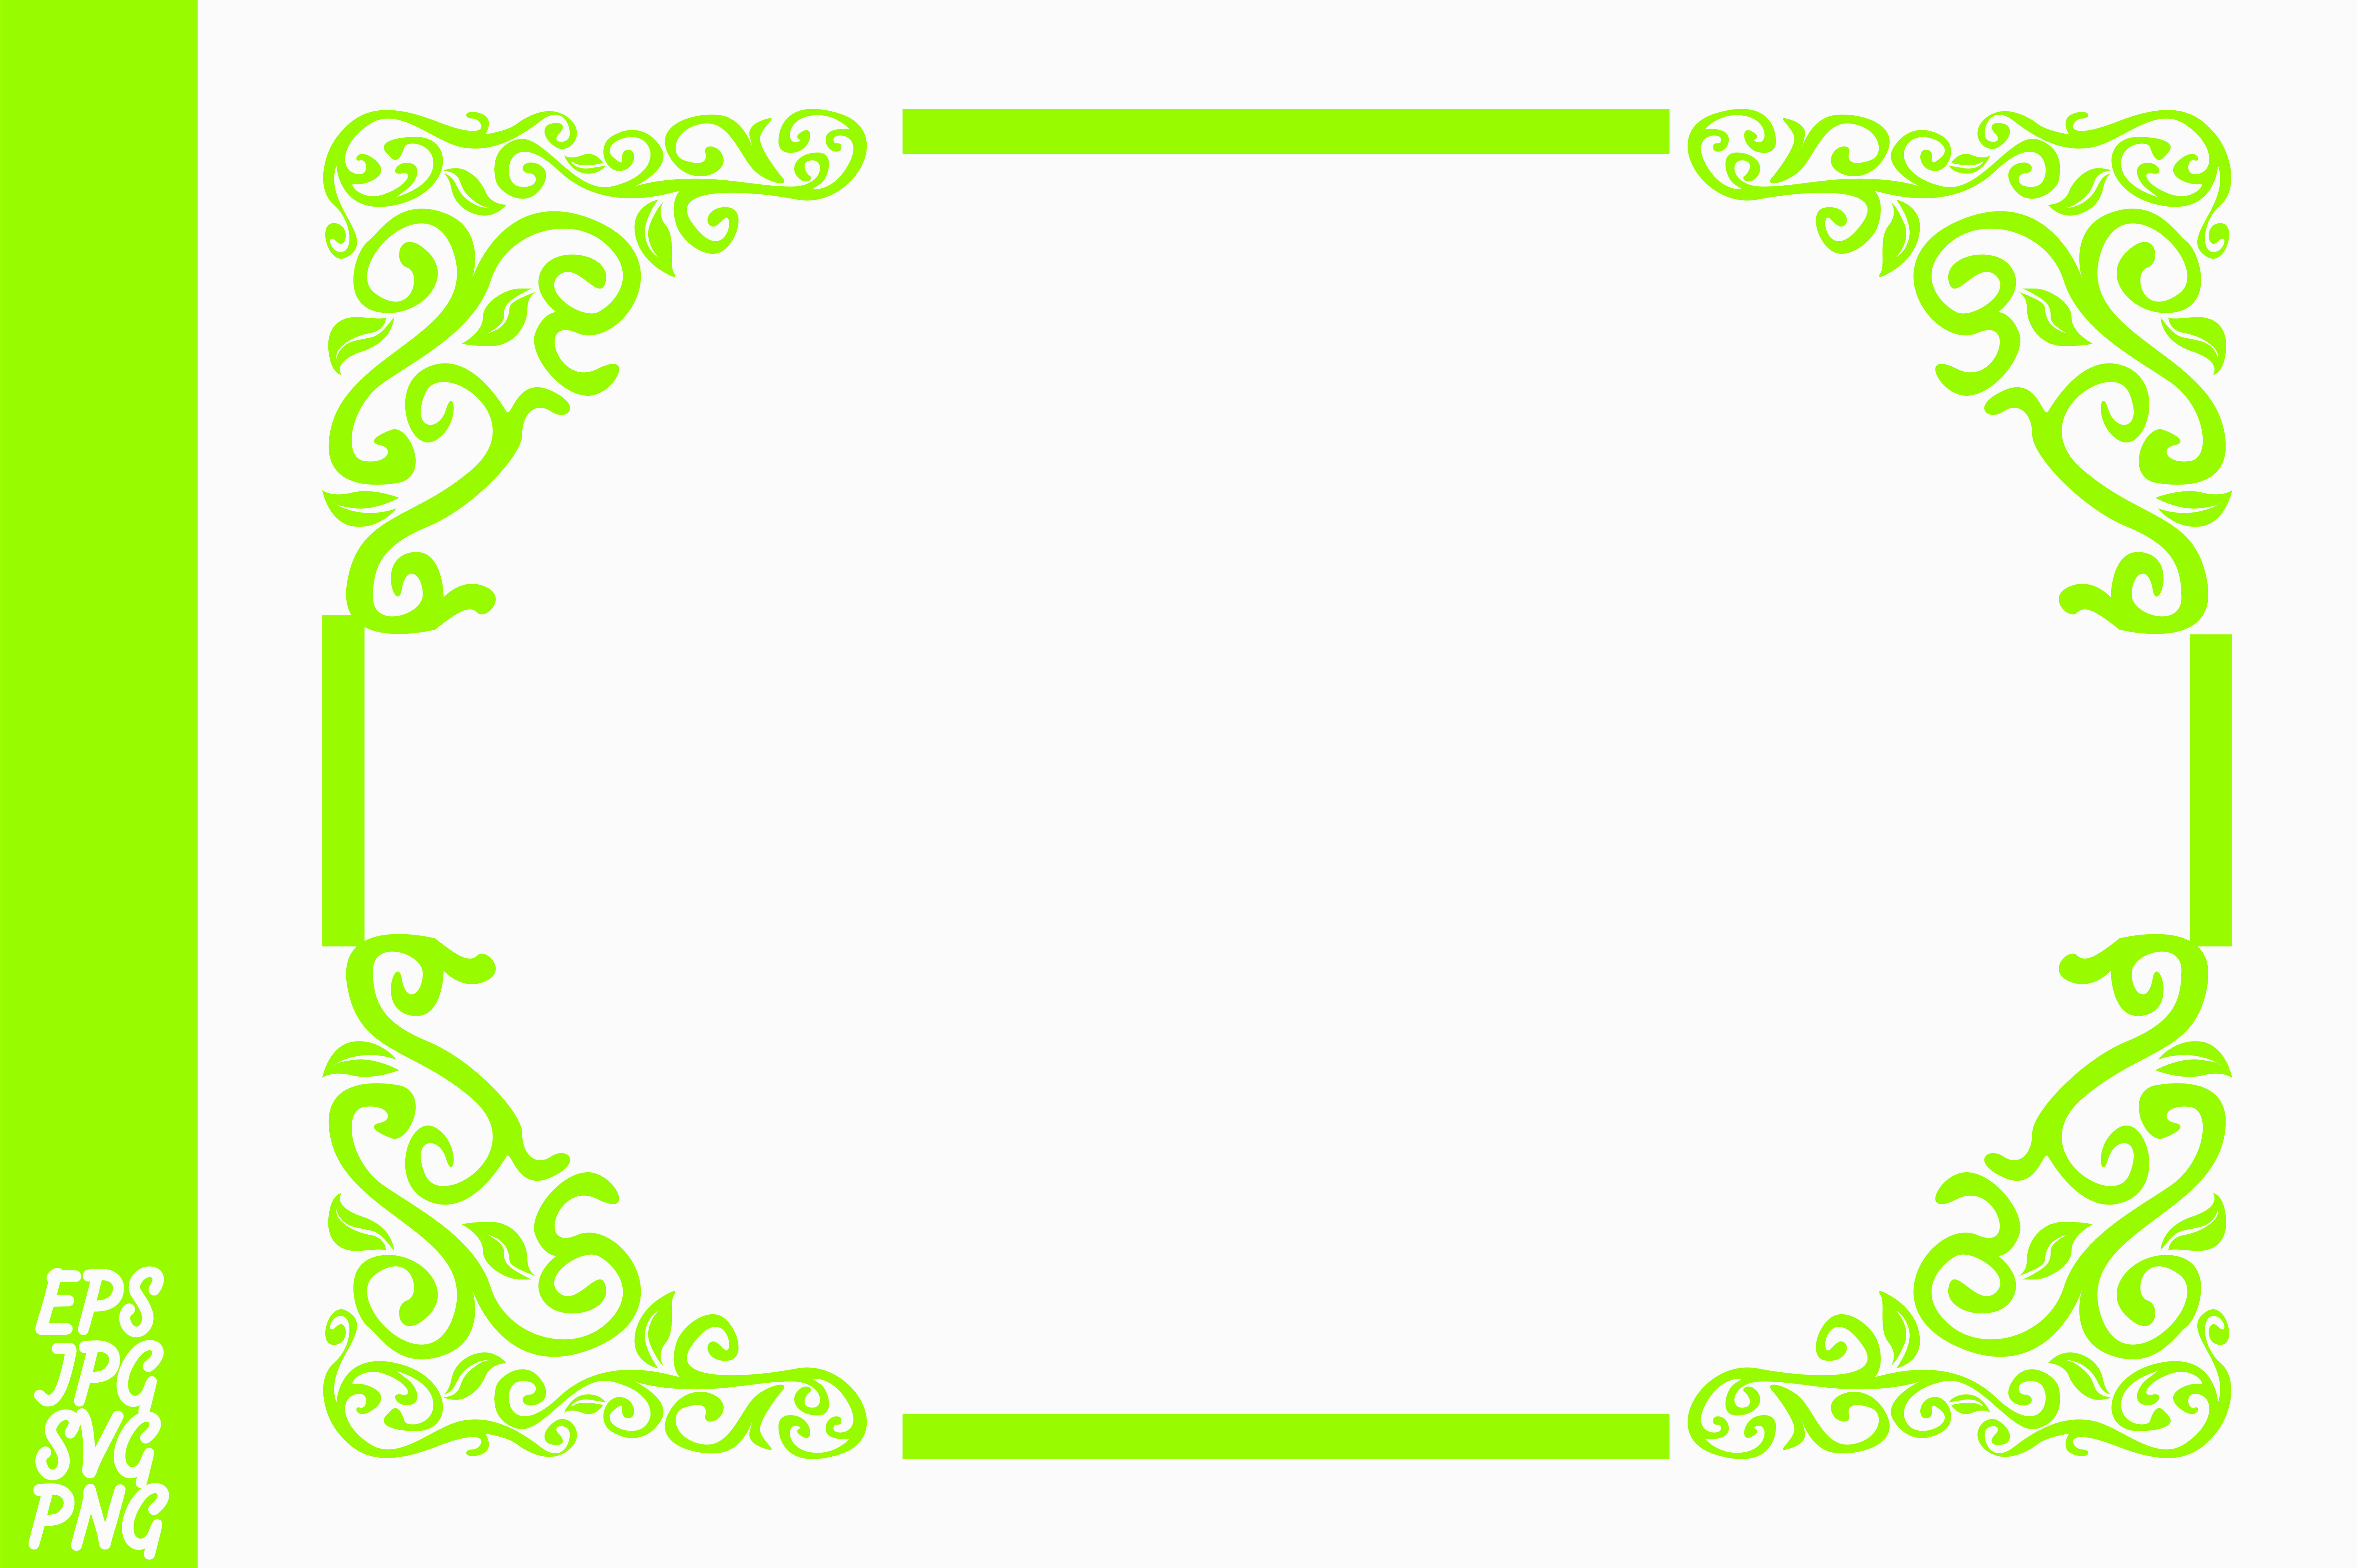 Download Free Green Ornament Border Decoration Graphic By Arief Sapta Adjie for Cricut Explore, Silhouette and other cutting machines.